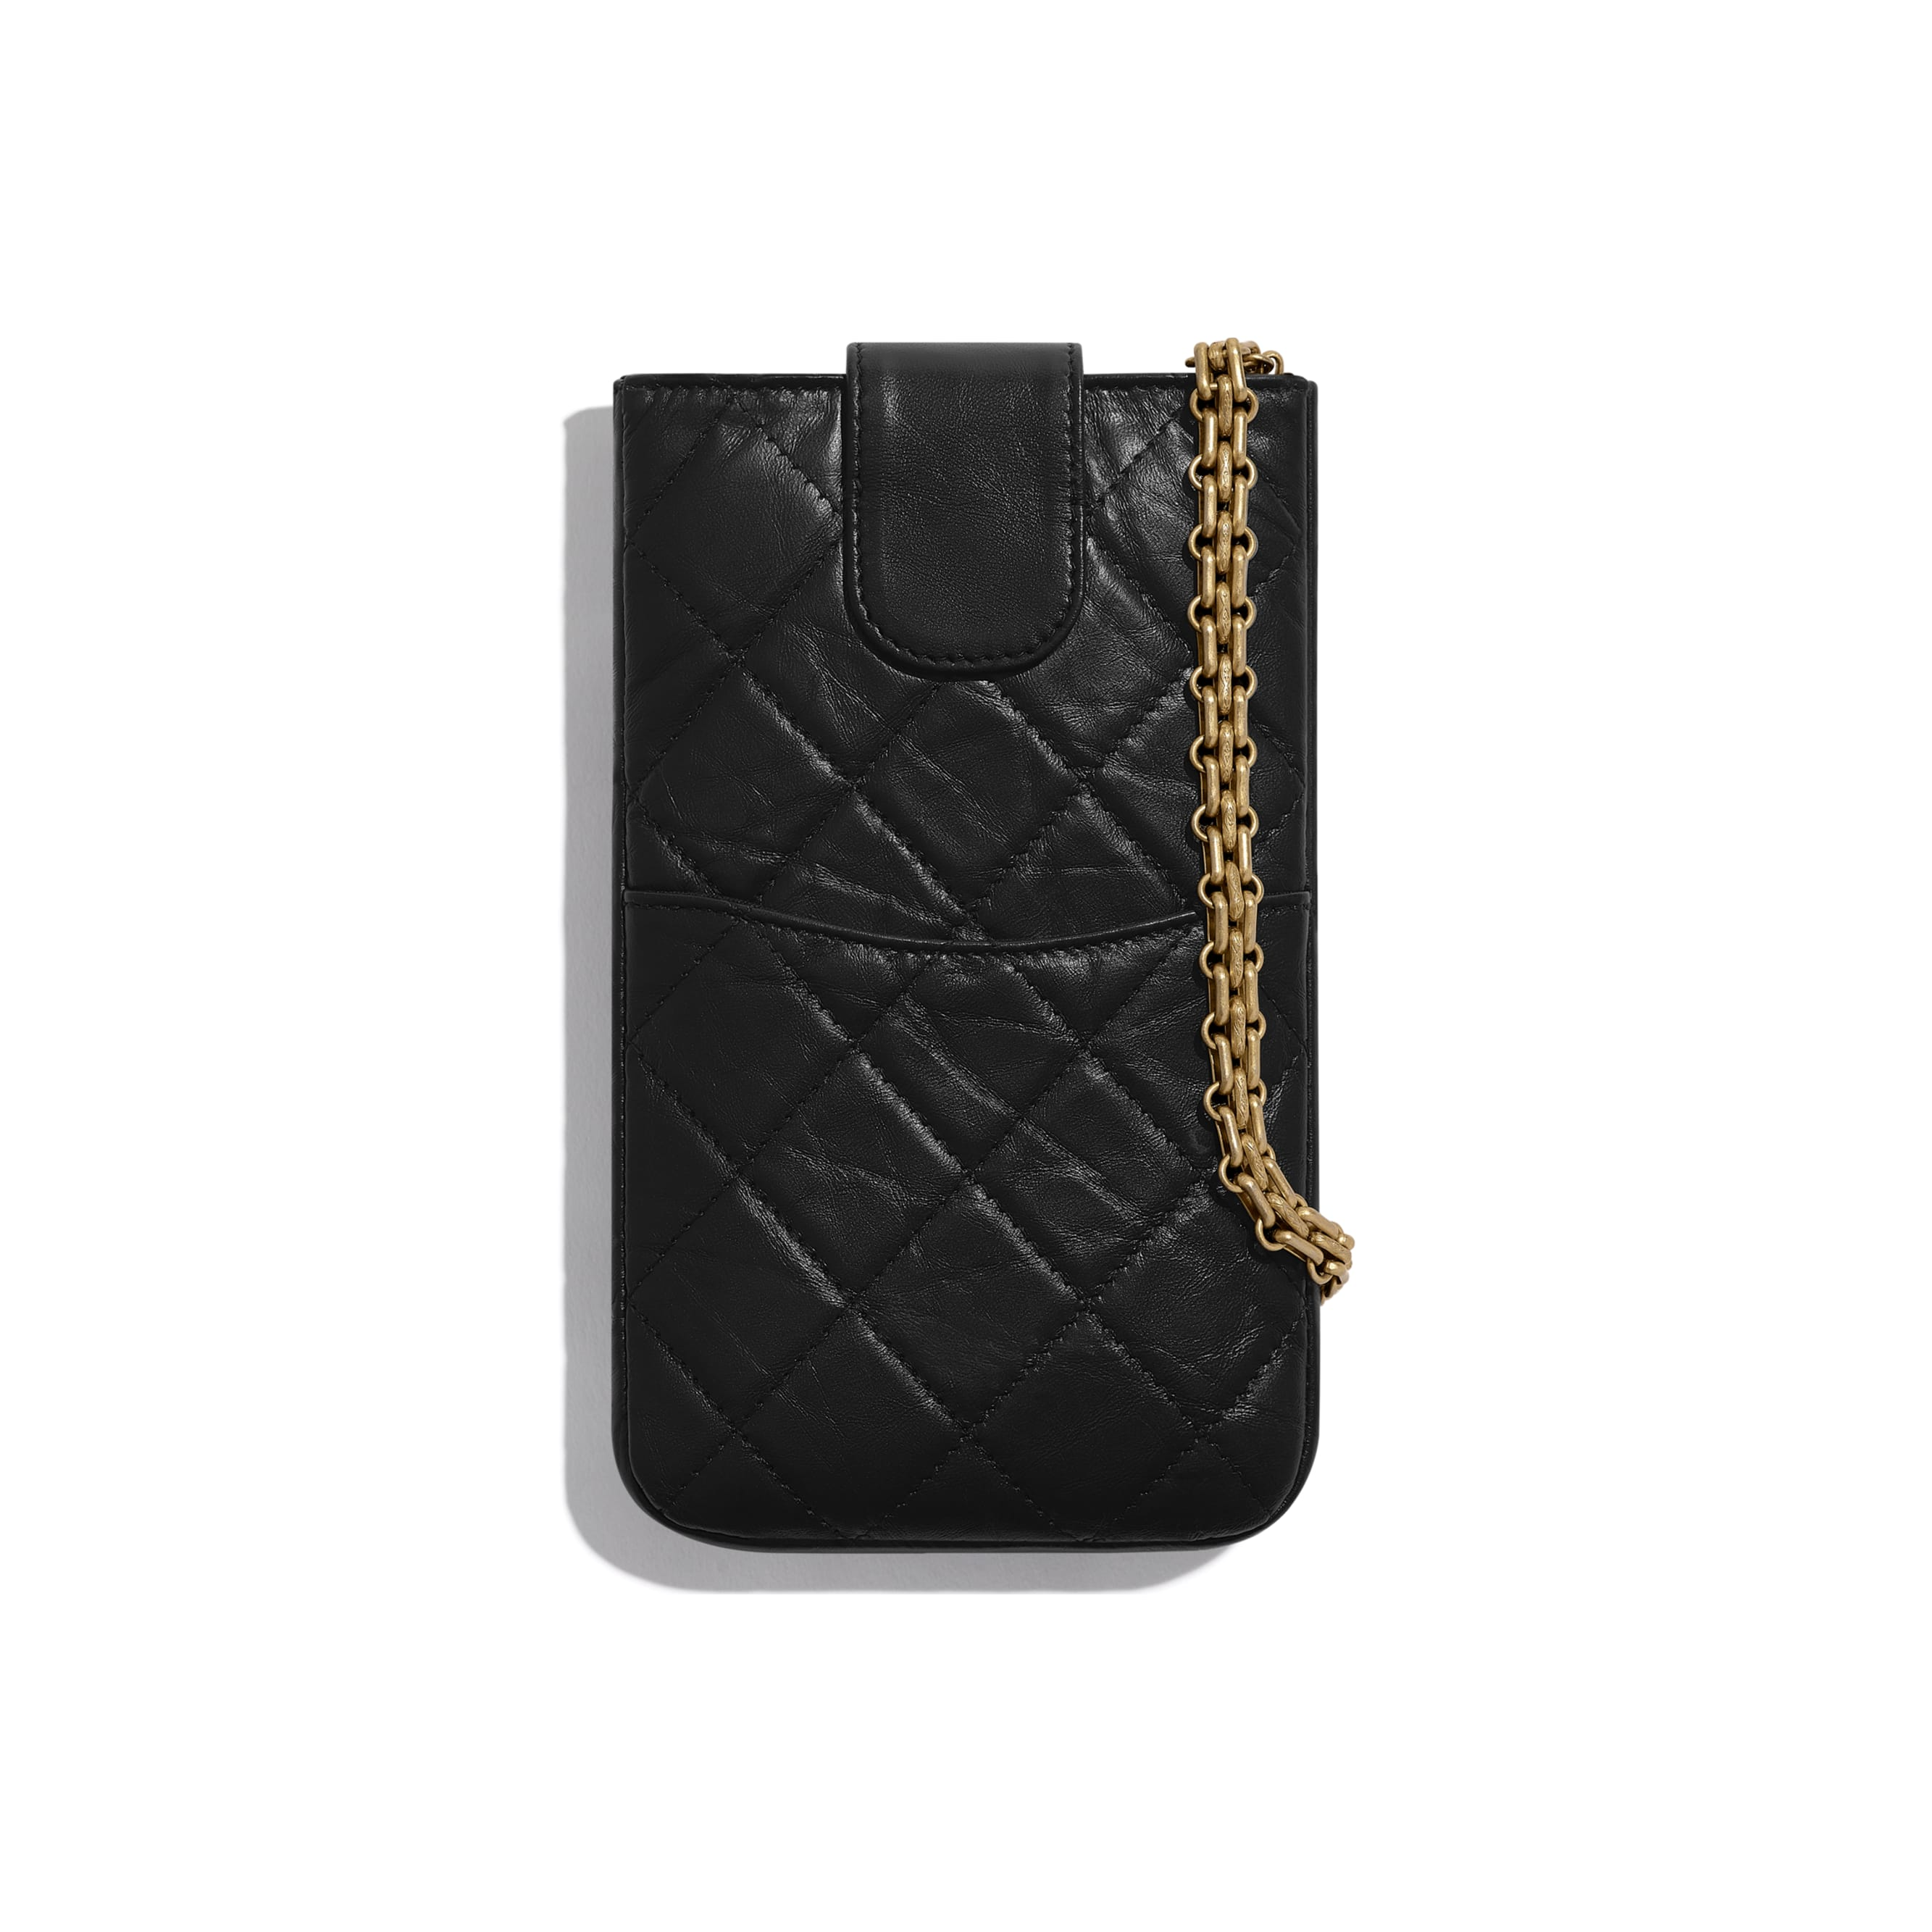 2.55 Phone Holder with Chain - Black - Aged Calfskin & Gold-Tone Metal - CHANEL - Alternative view - see standard sized version